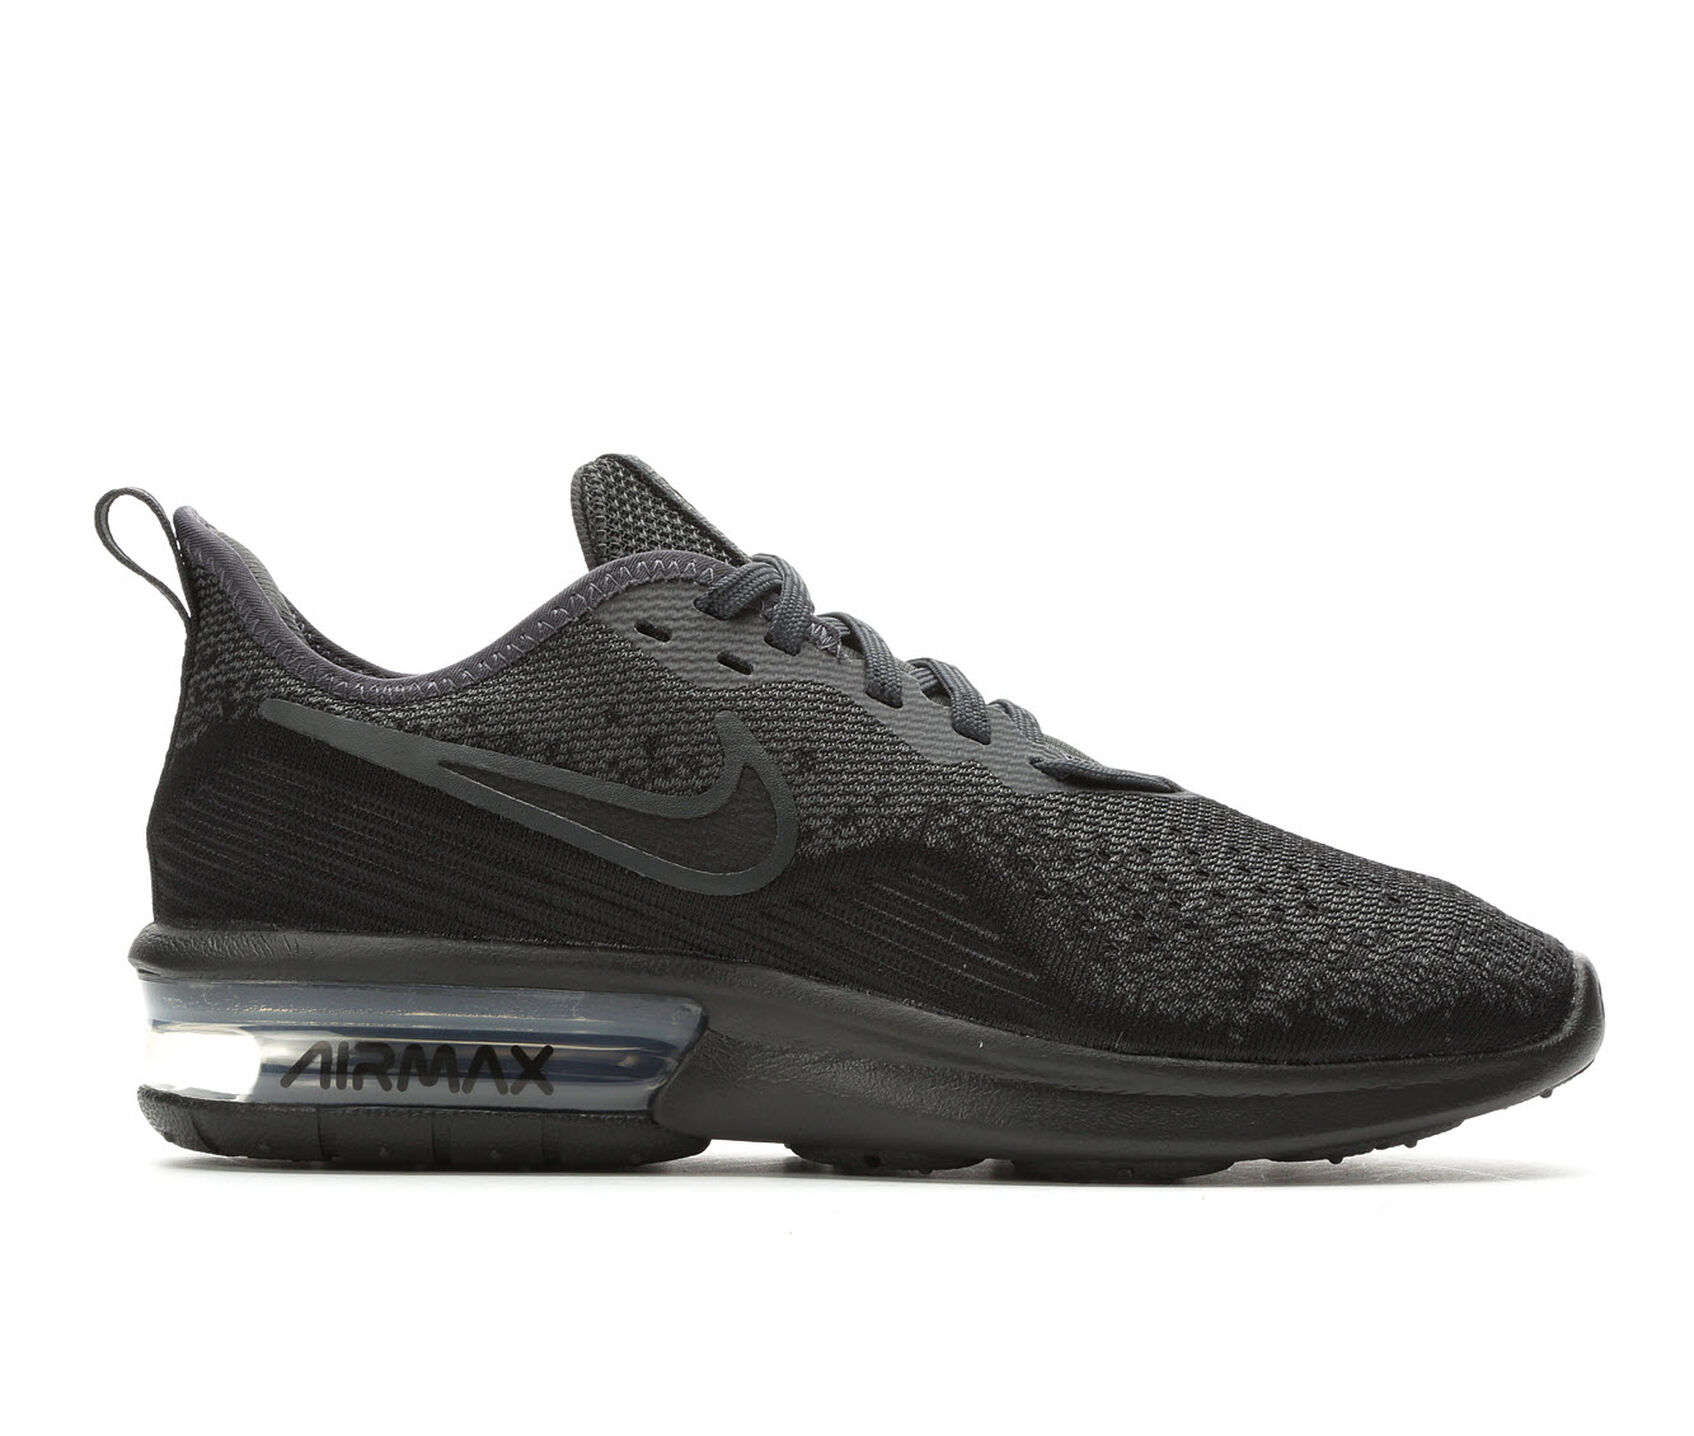 timeless design 49fb7 b4496 ... Nike Air Max Sequent 4 Running Shoes. Previous